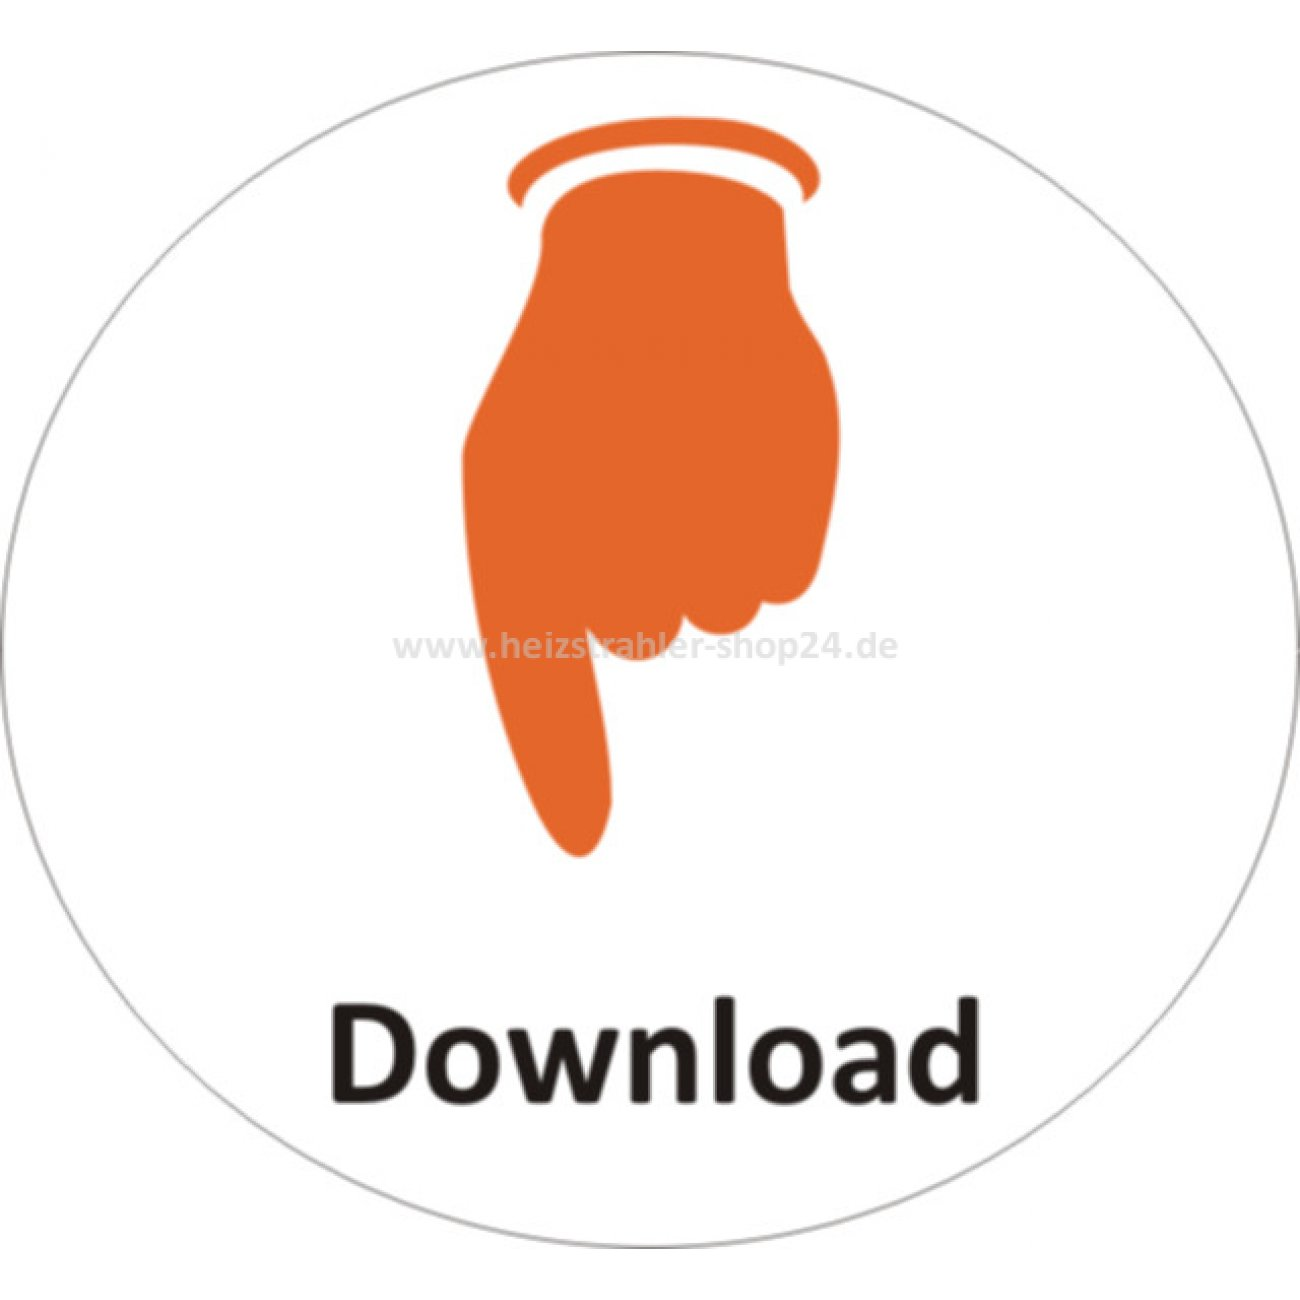 download The acoustic guitar